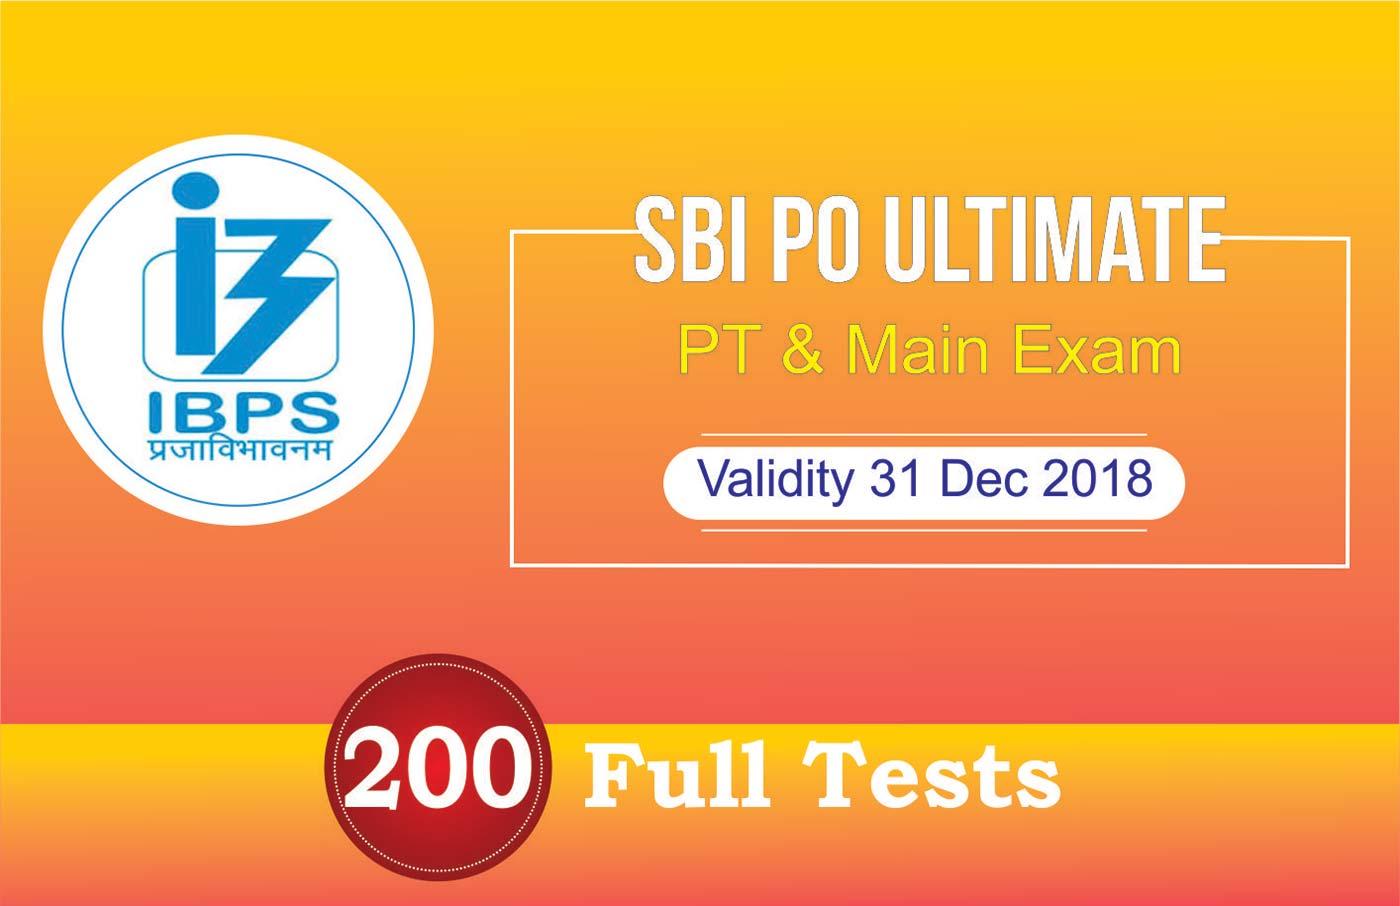 SBI PO ULTIMATE